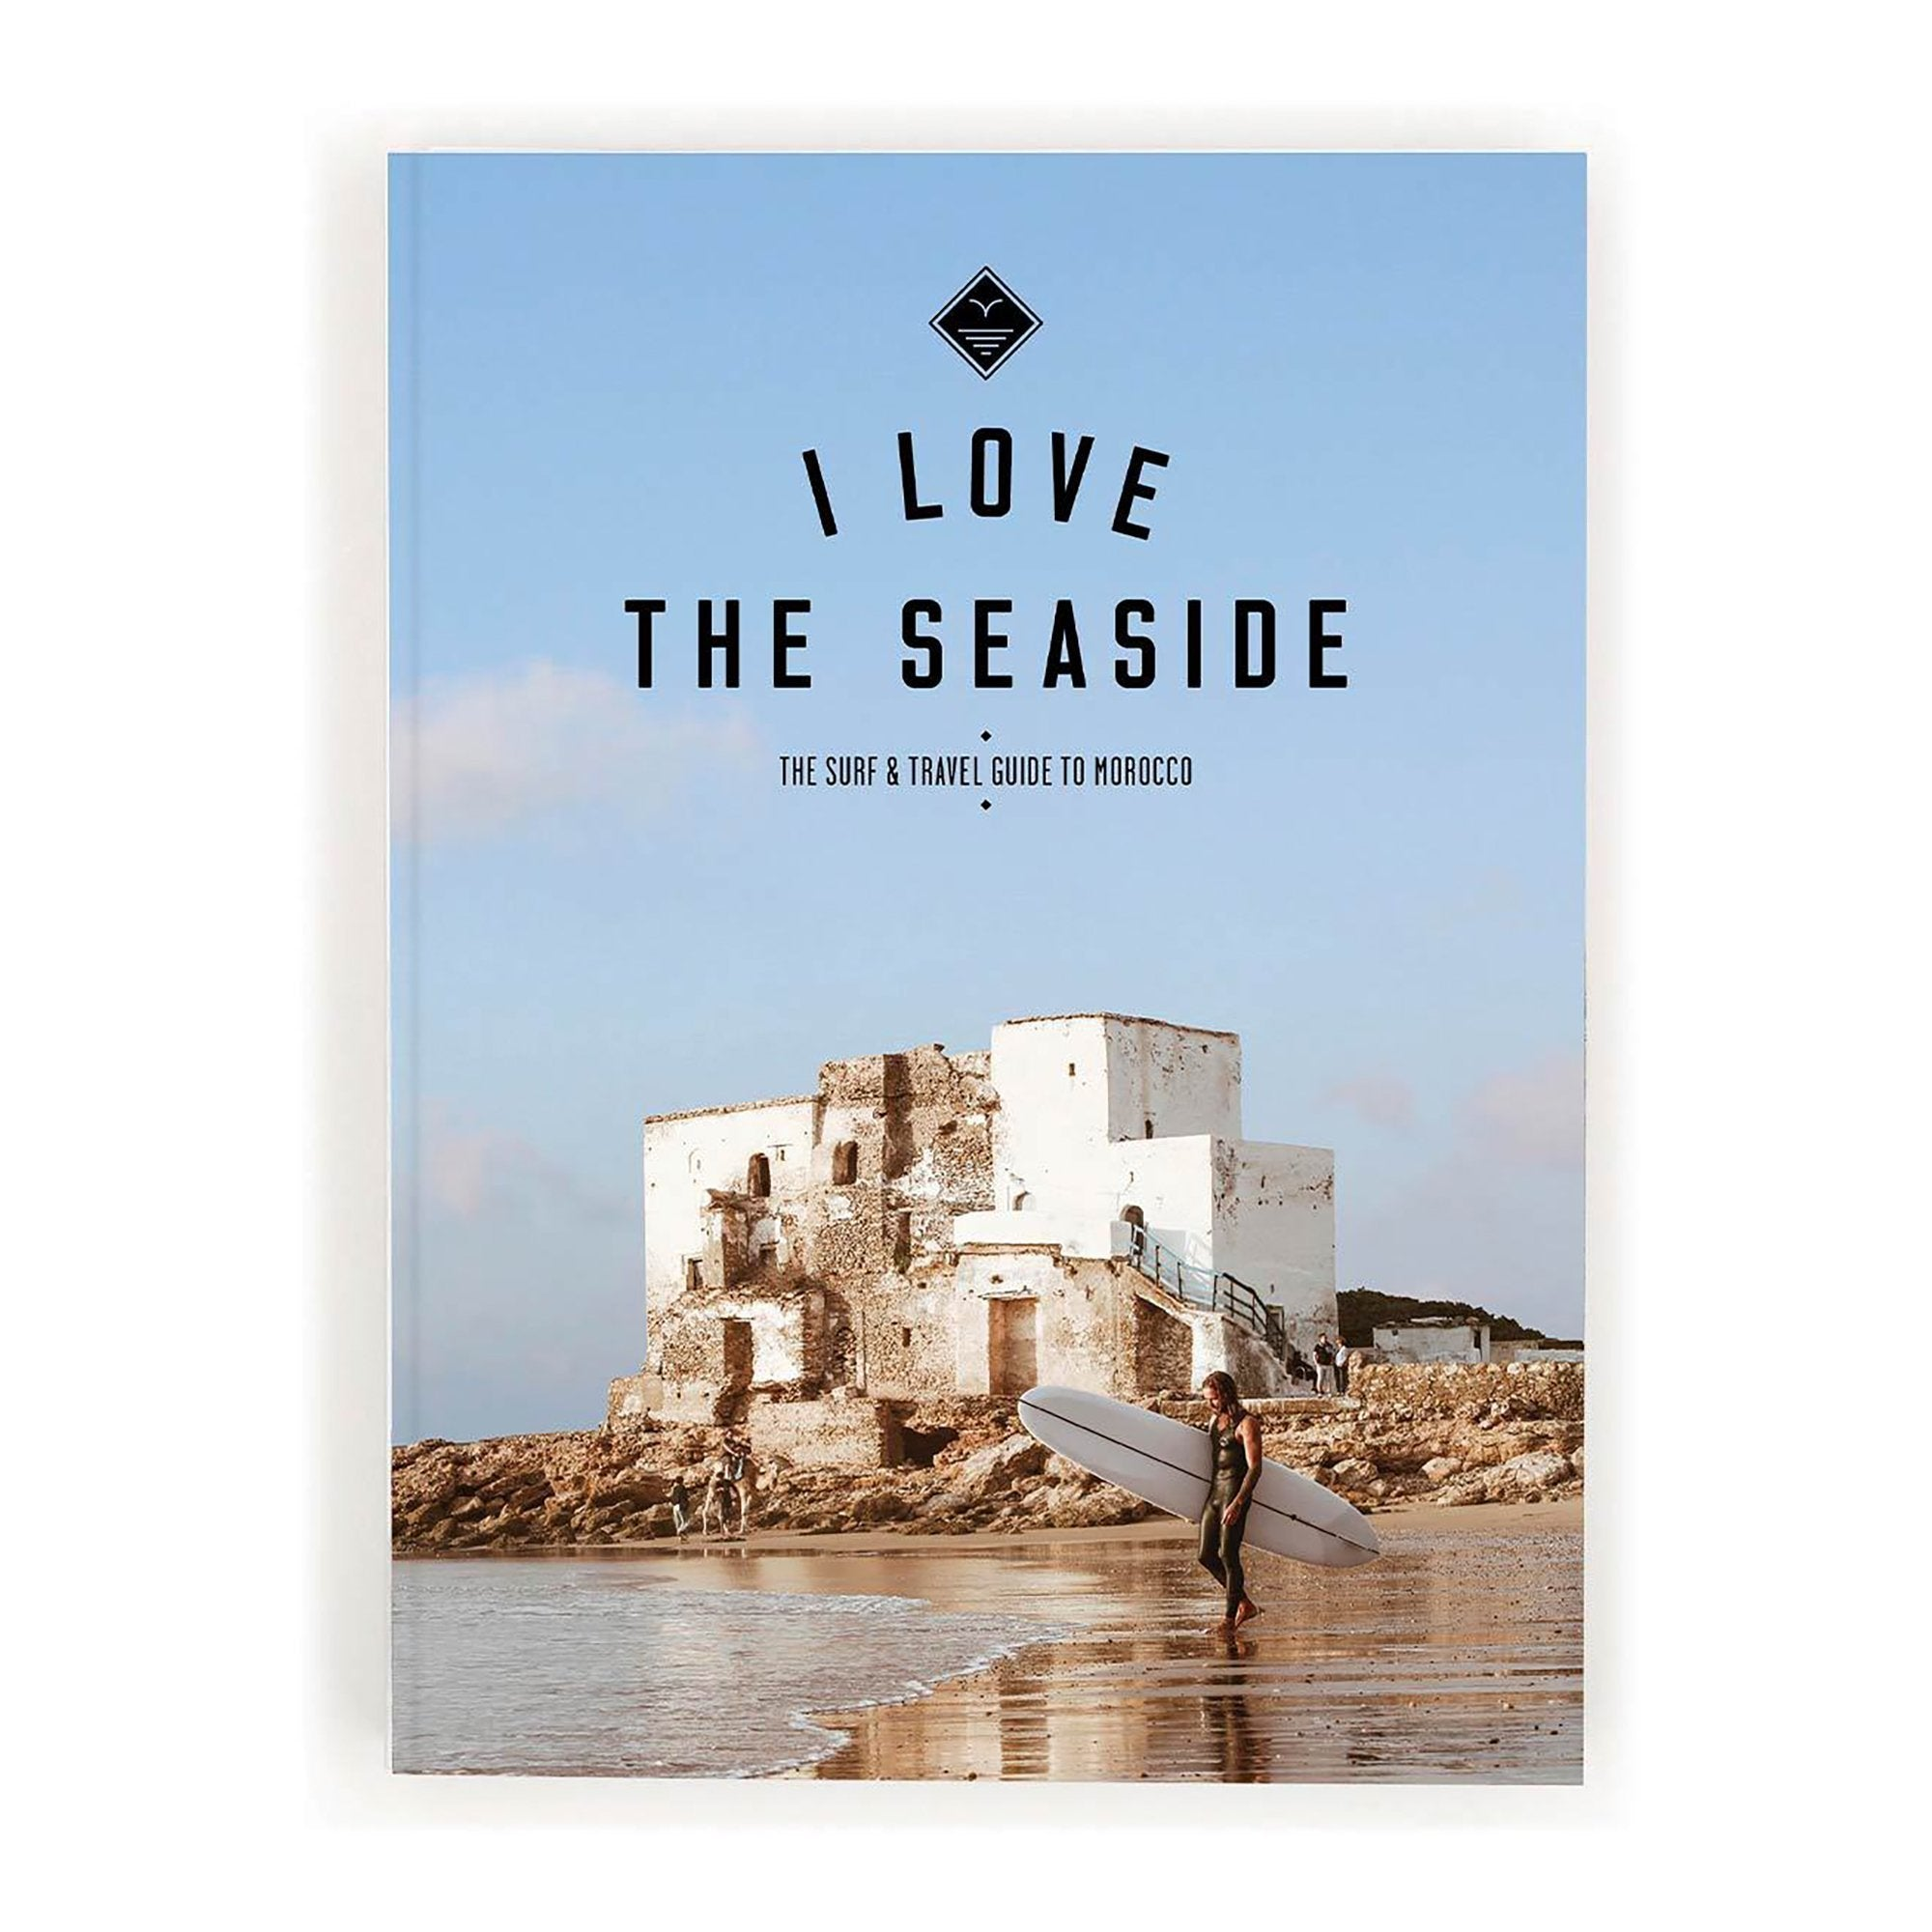 I Love The Seaside - The Surf & Travel Guide To Morocco - Bok - Vindpinad